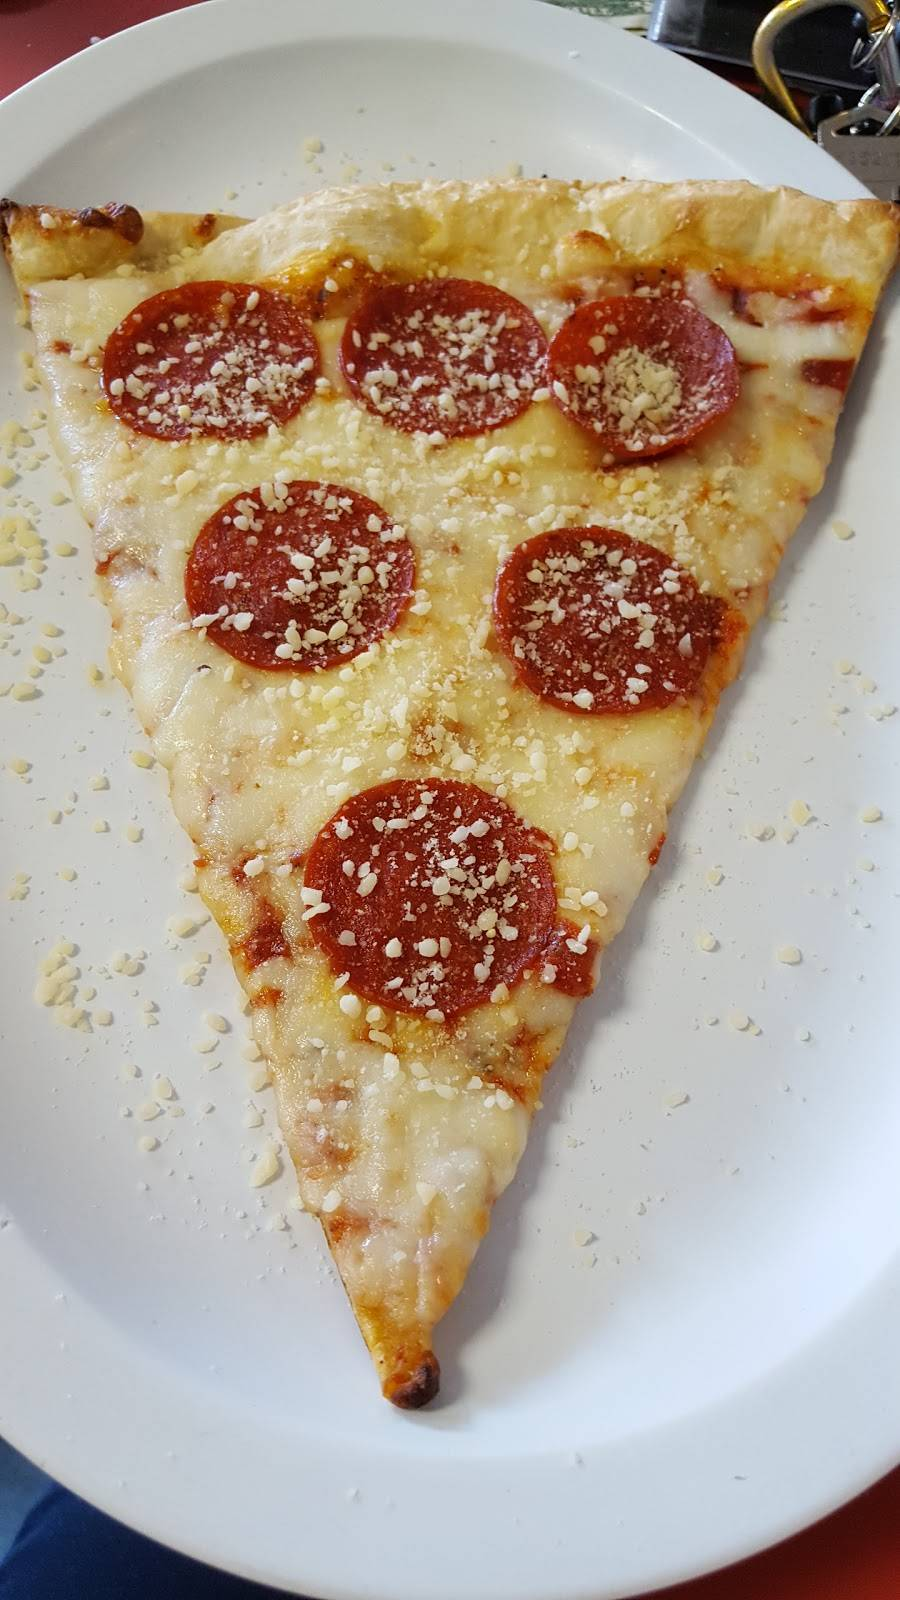 Rays Ny Pizza | meal delivery | 442 Newtown Rd, Virginia Beach, VA 23462, USA | 7574900060 OR +1 757-490-0060